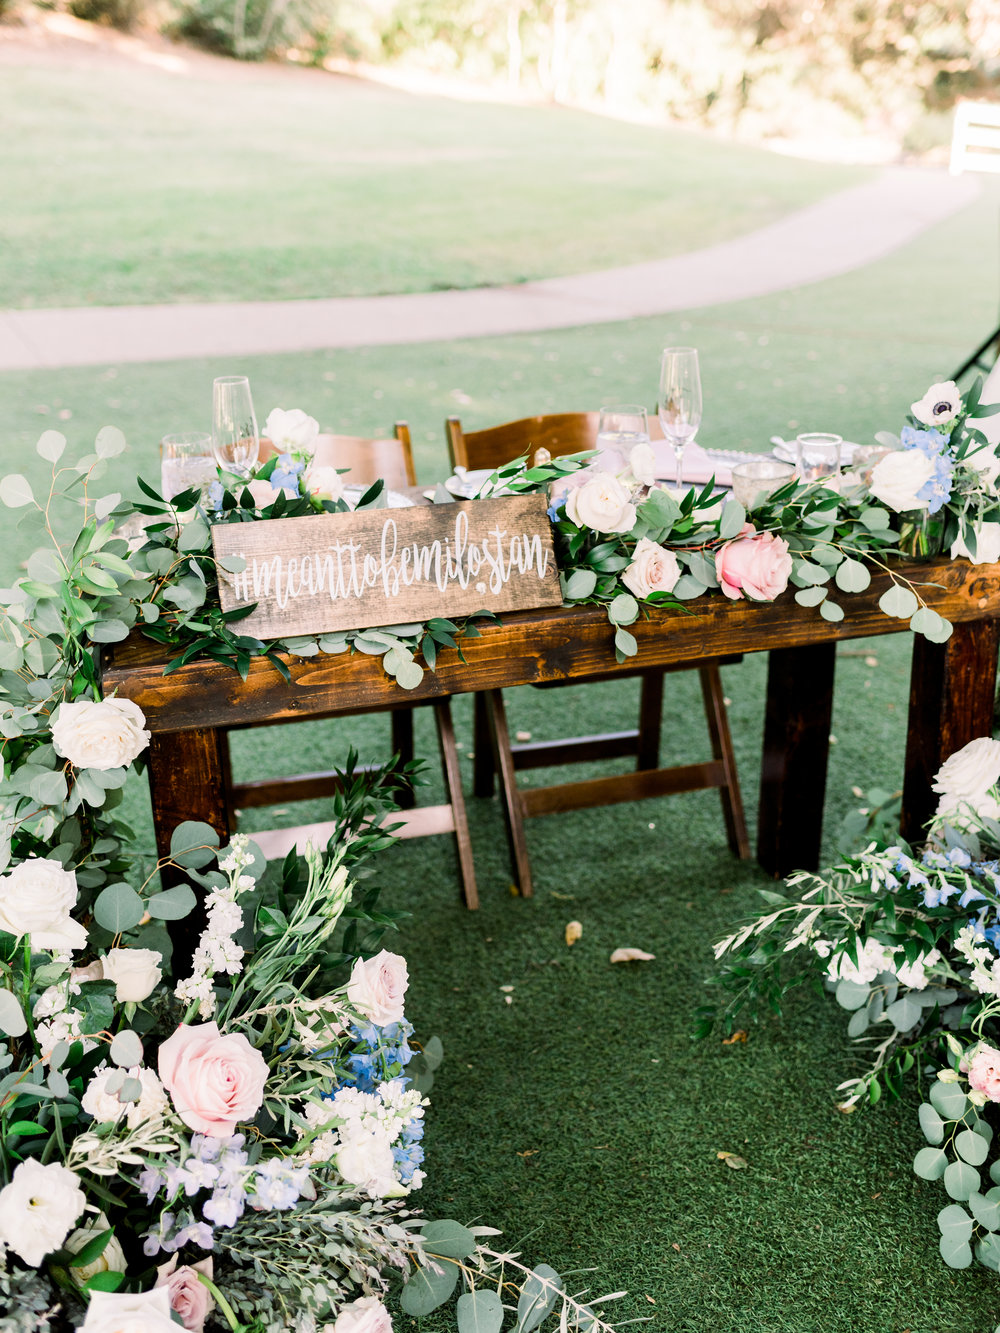 bride-and-groom-head-wedding-table.jpg